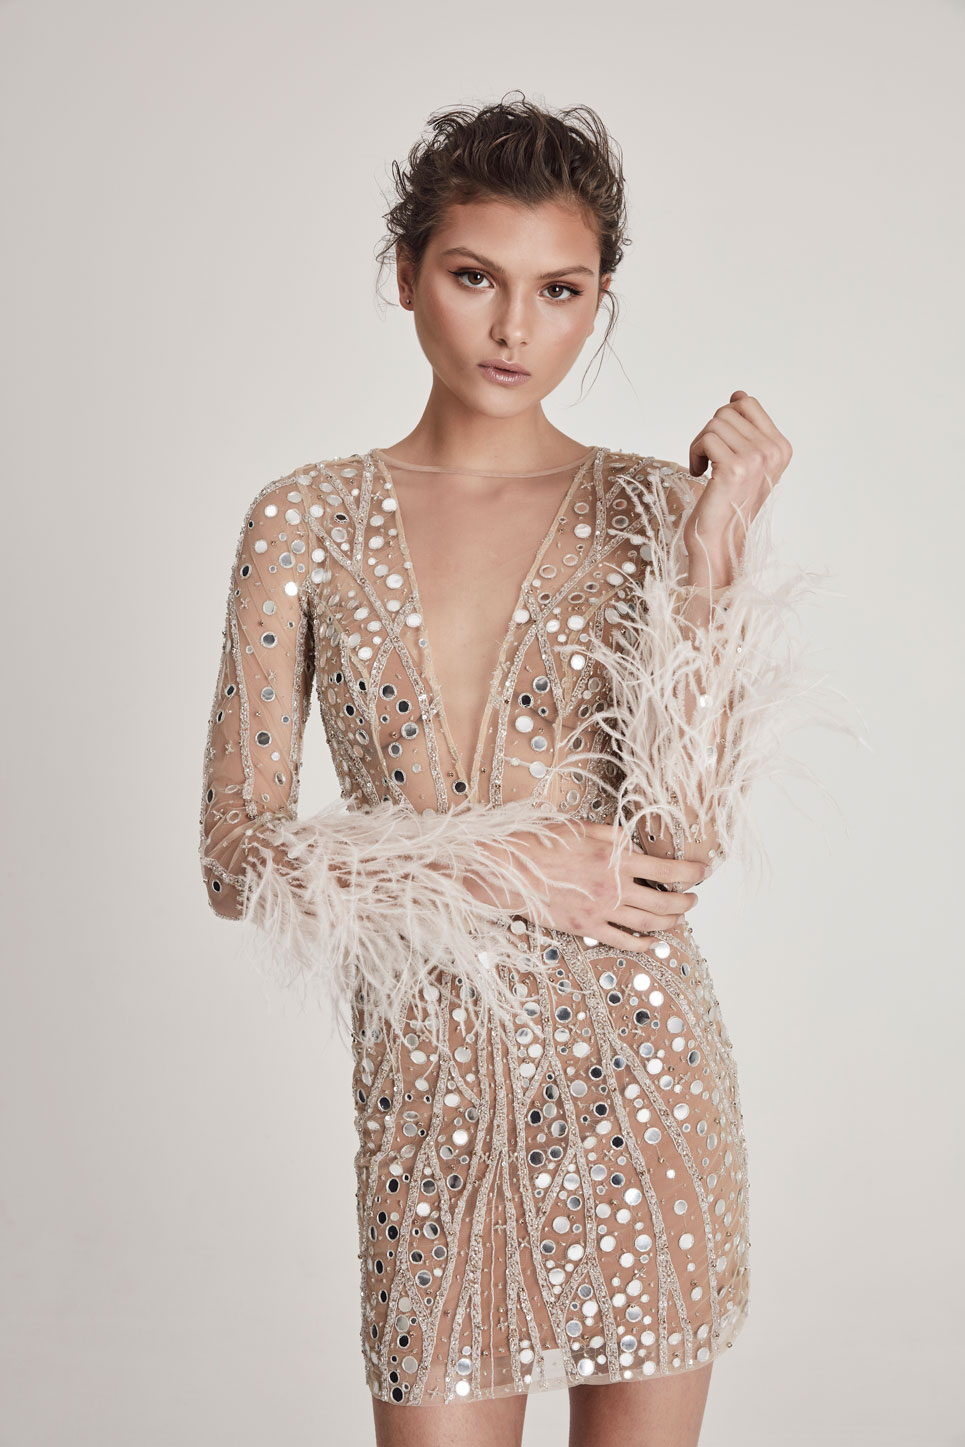 Darcy Sequin Party Short Dress by Chosen | 10 Wedding Day Looks for the Non-Traditional Bride | LOVE FIND CO.